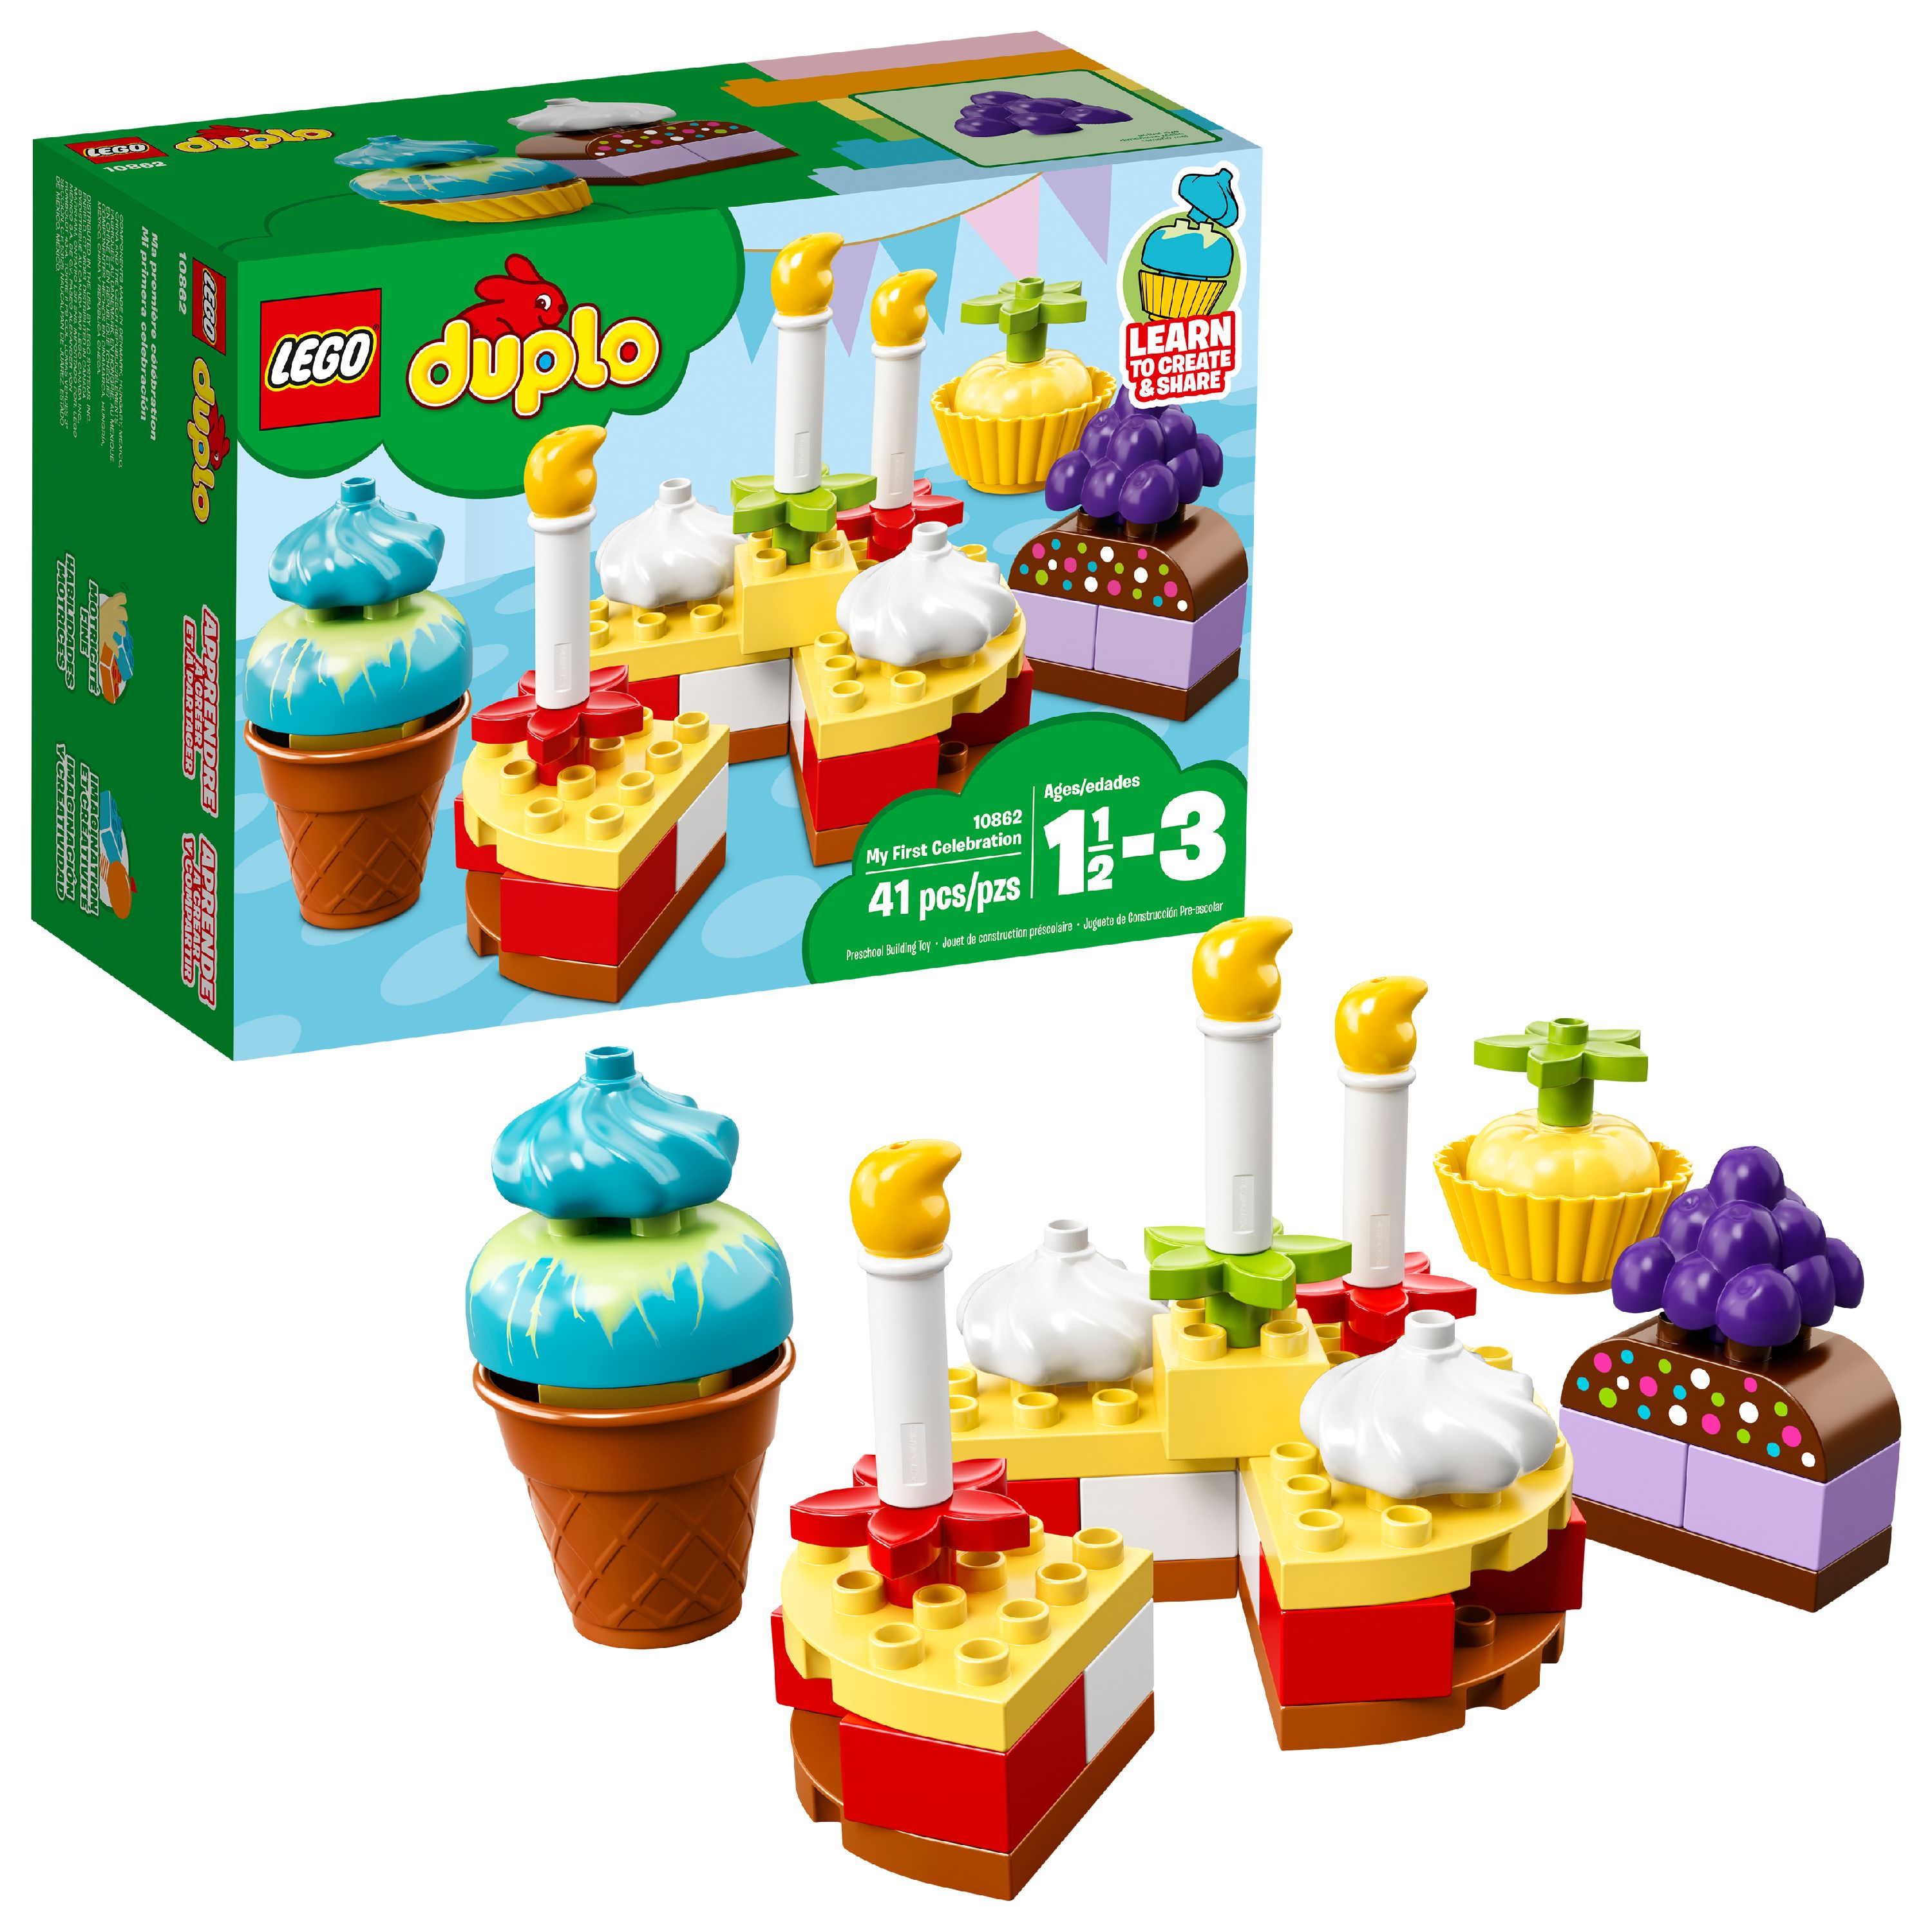 LEGO DUPLO My First Celebration 10862 Building Blocks (41 Pieces)